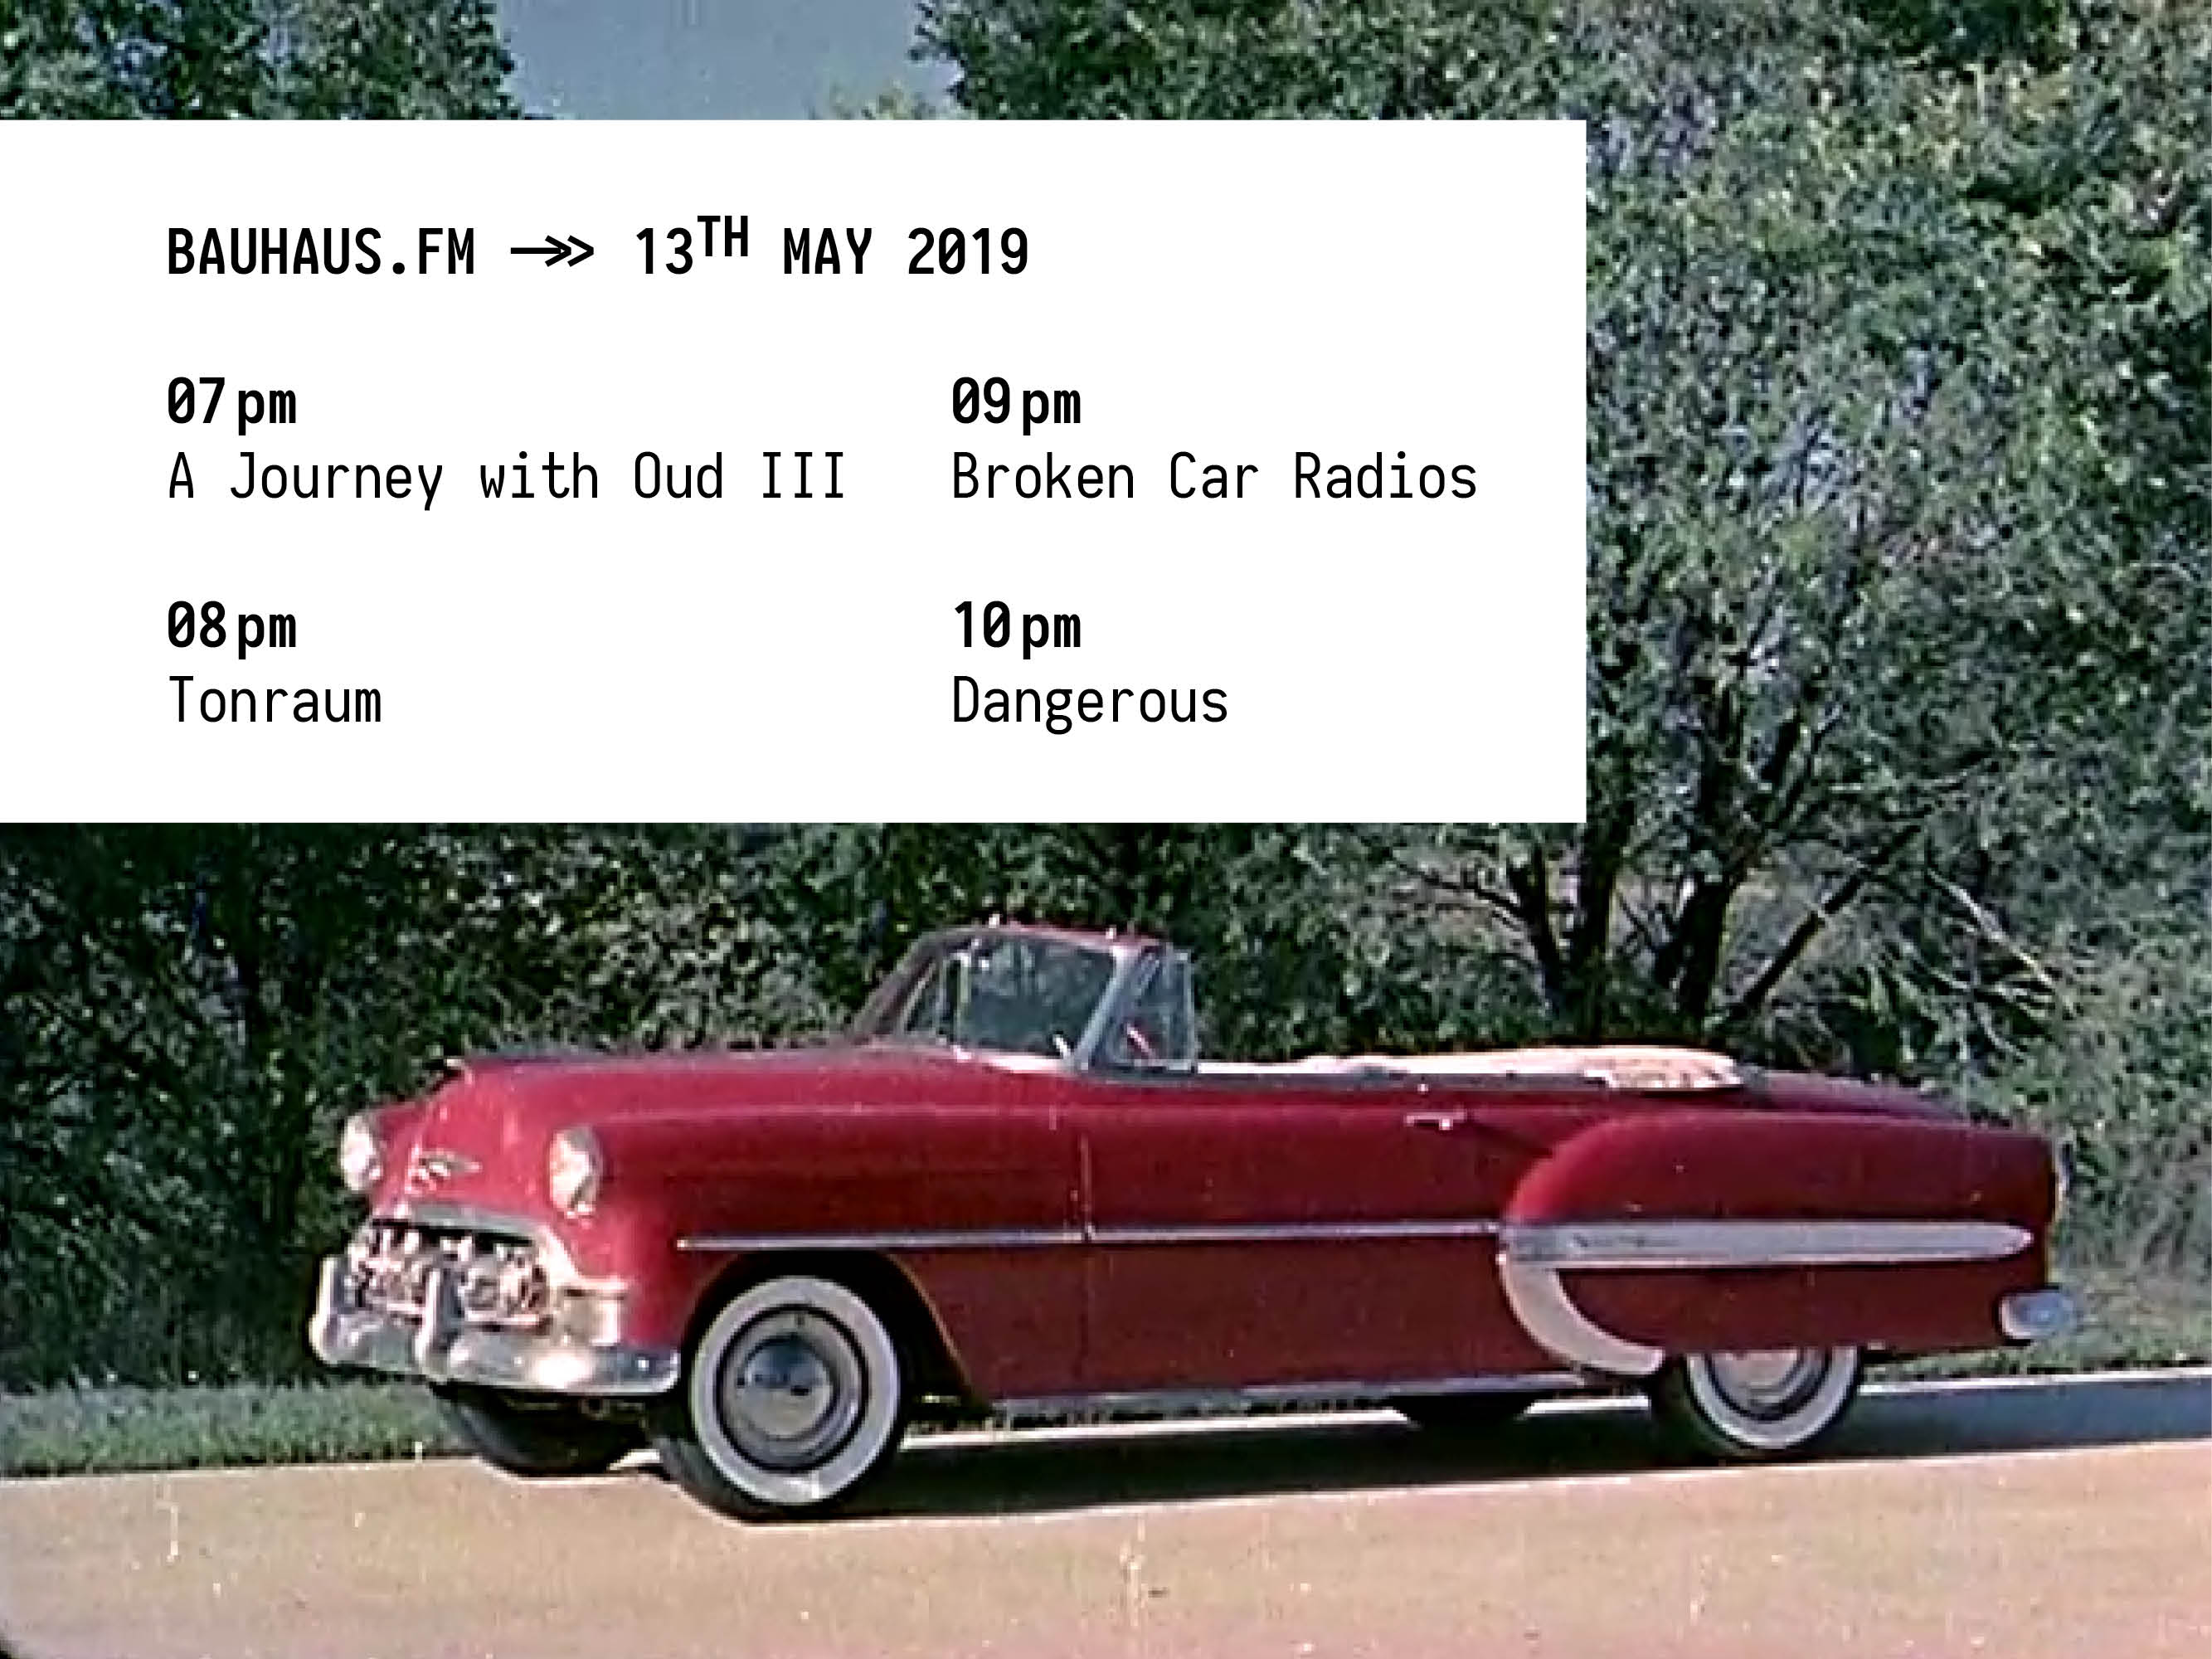 bauhaus.fm schedule for 13th May 2019